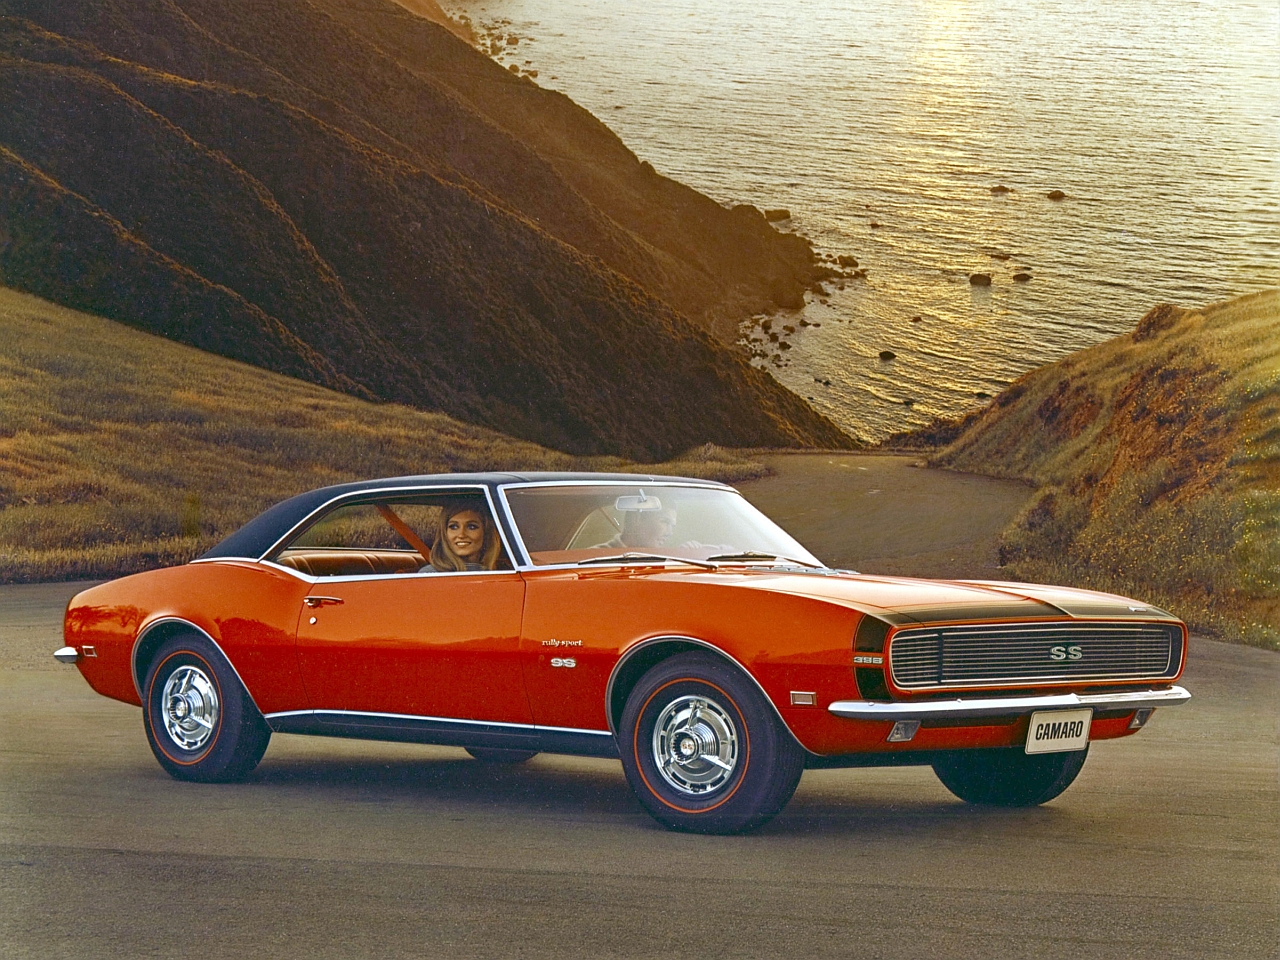 'Coke bottle hip' styling at it's finest - the first generation Camaro